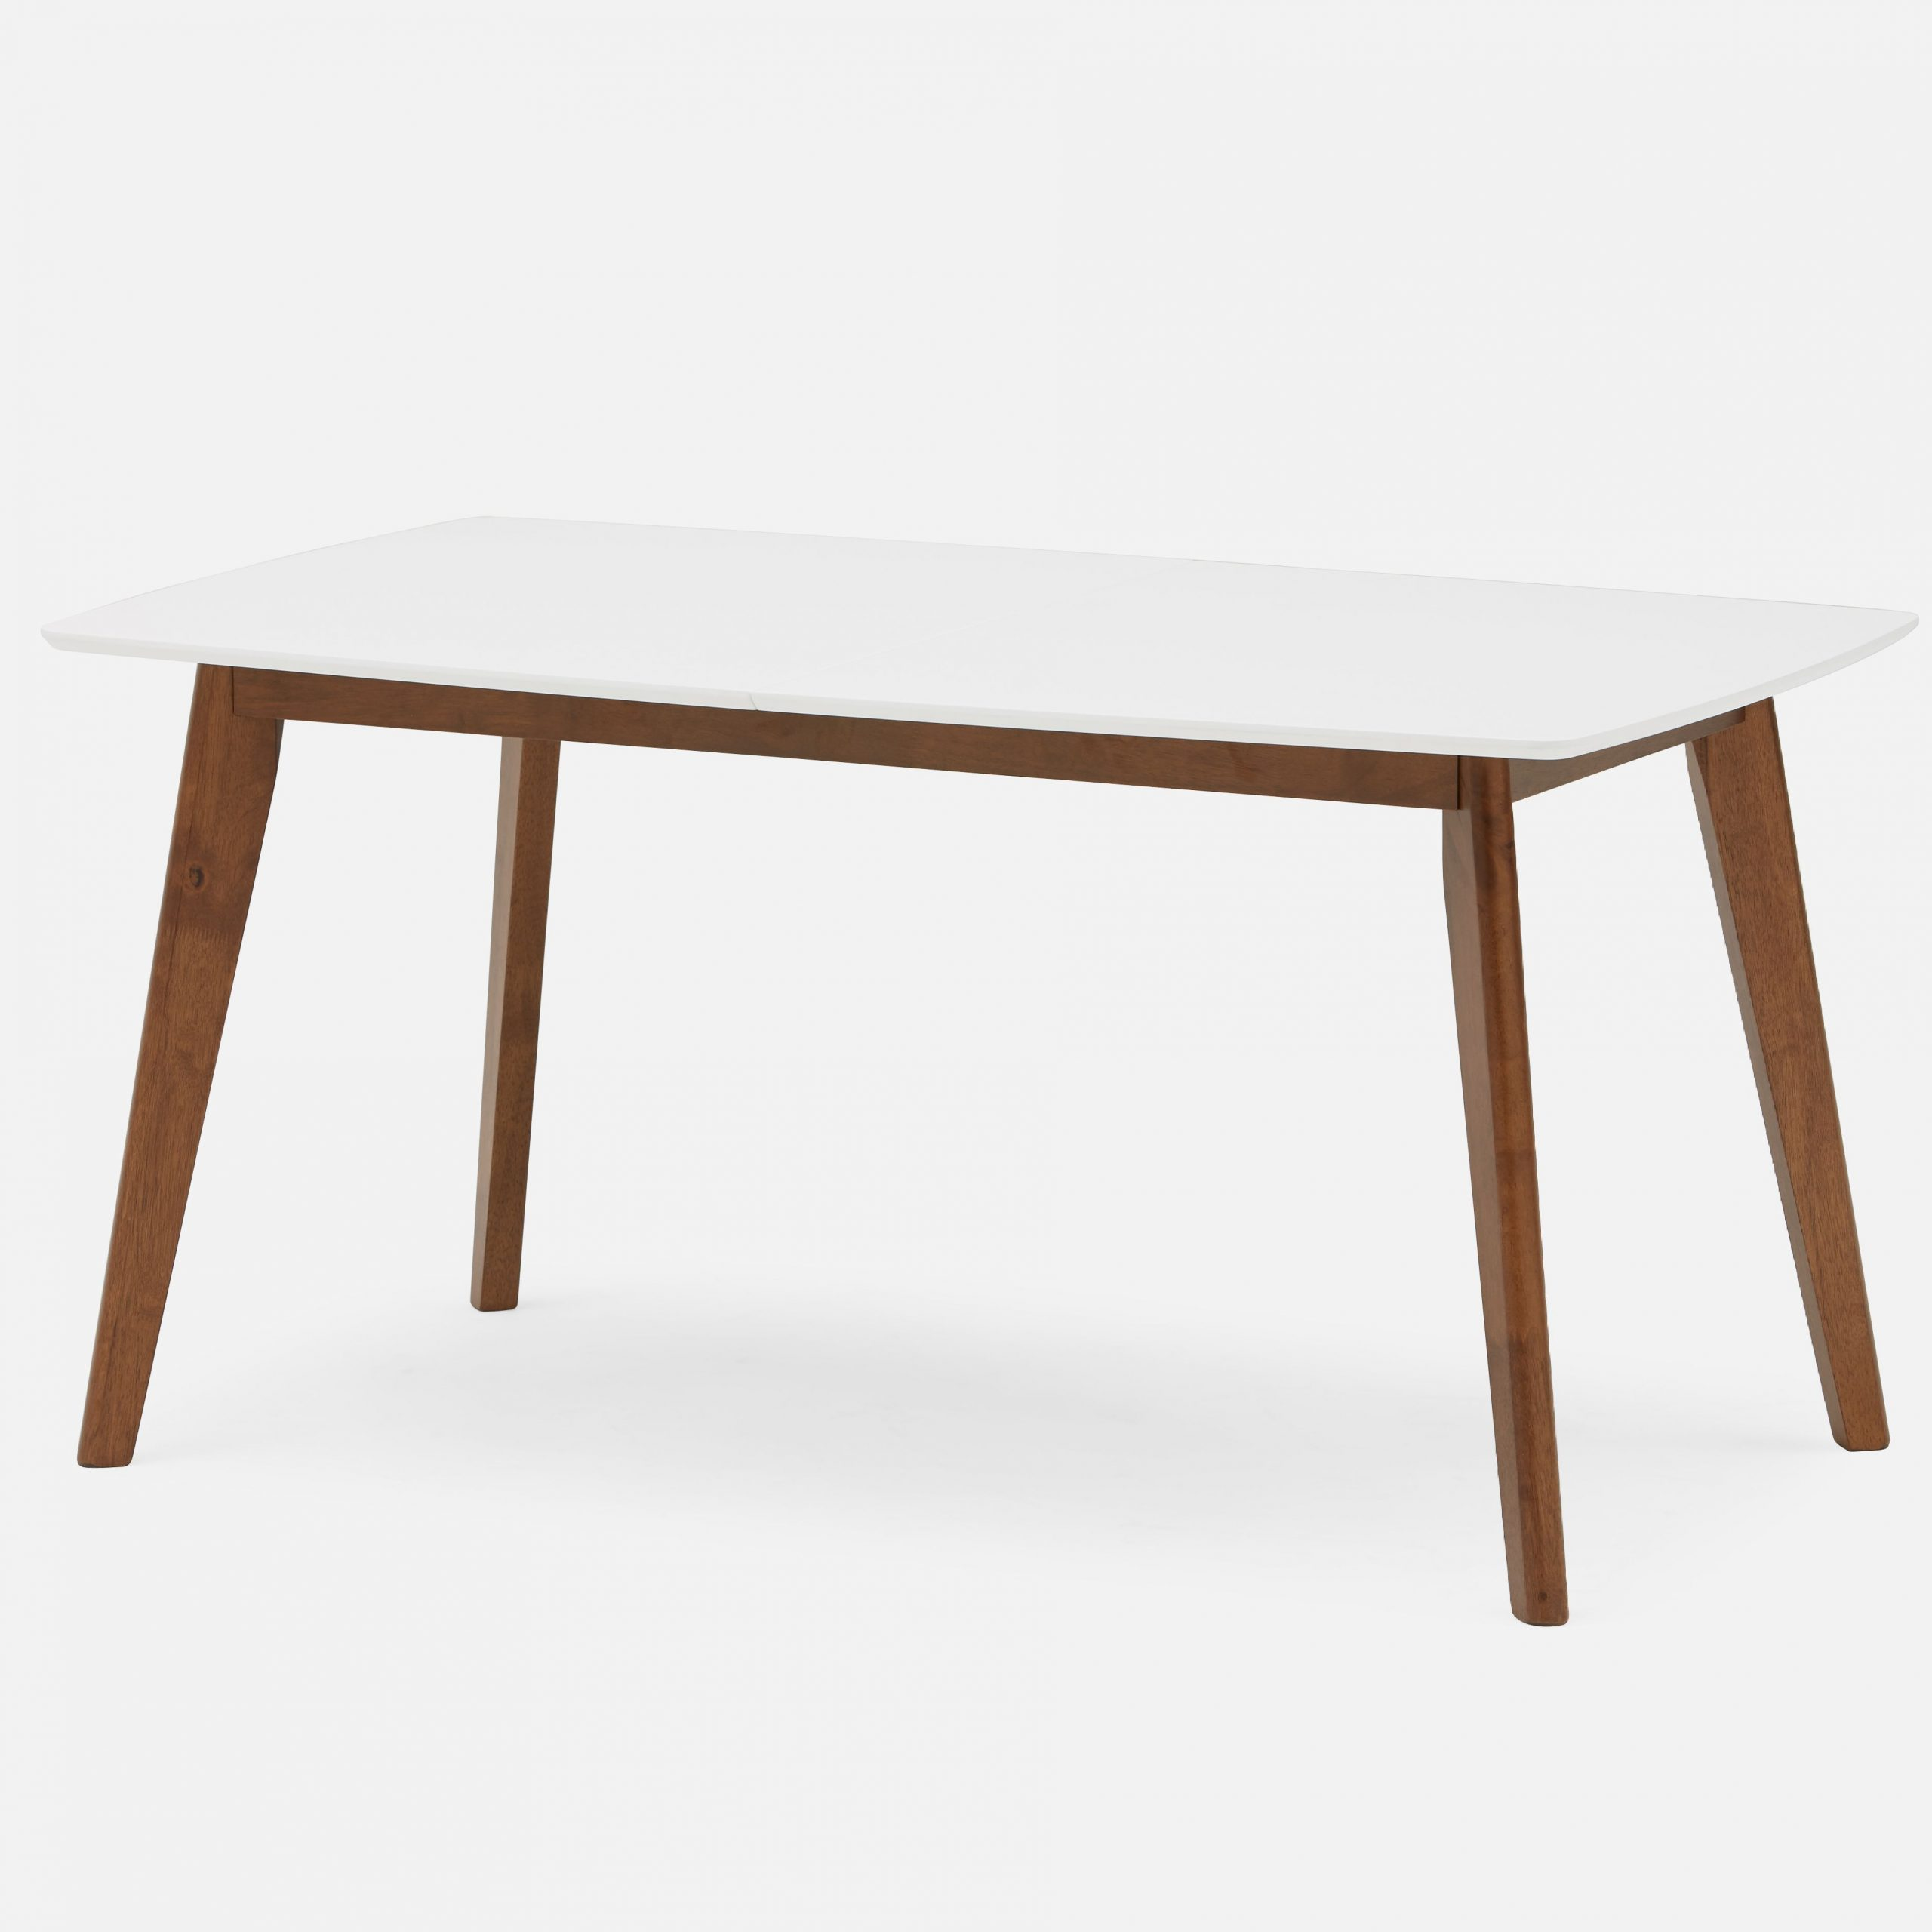 2019 Juhana Extendable Dining Table With Lacquered Top 150Cm To in Acacia Wood Dining Tables With Sheet Metal Base